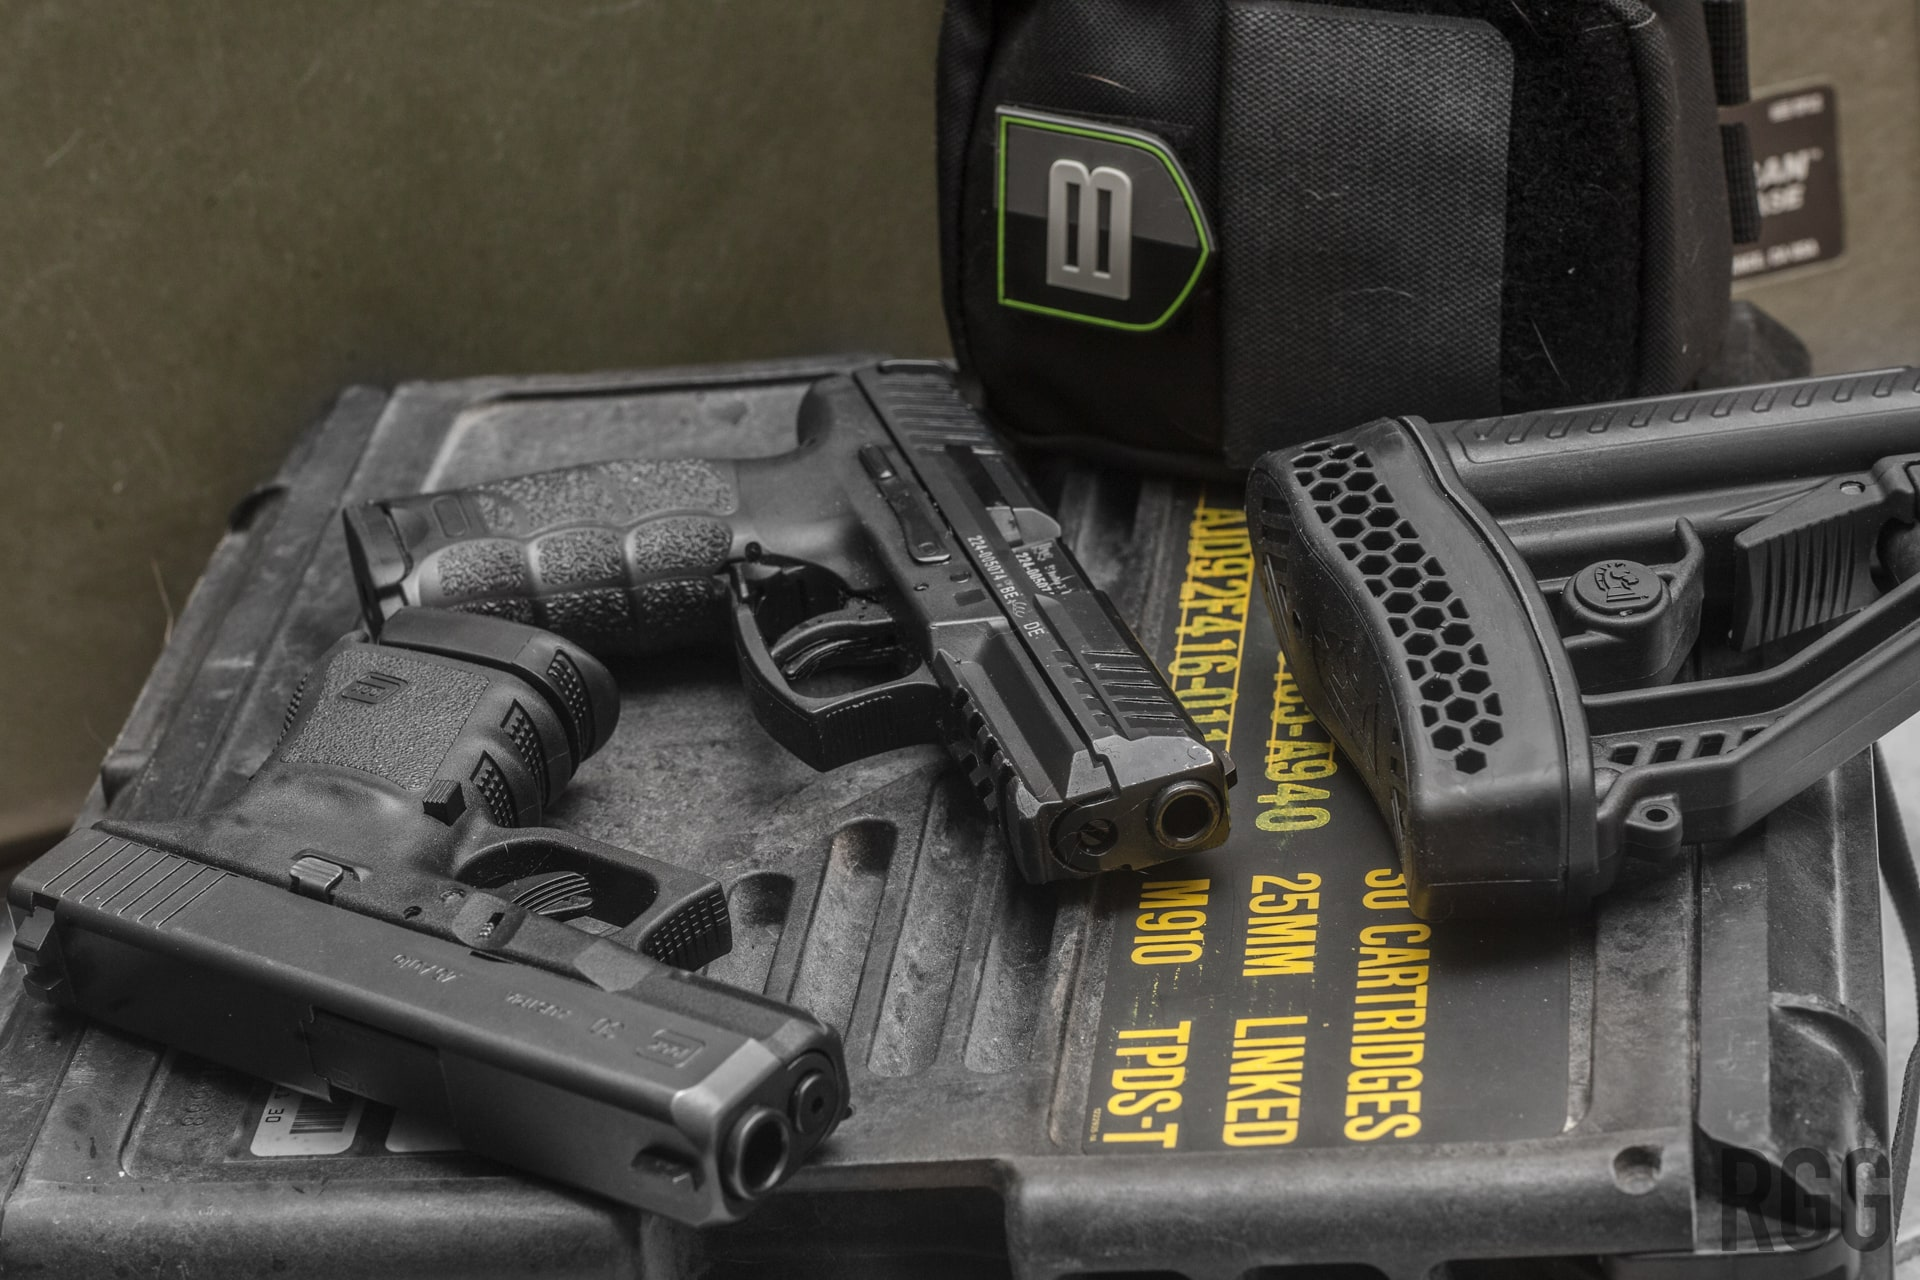 Breakthrough Clean, GLOCK 30, Heckler & Koch VP9, and an Adaptive Tactical EX Performance Adjustable Stock